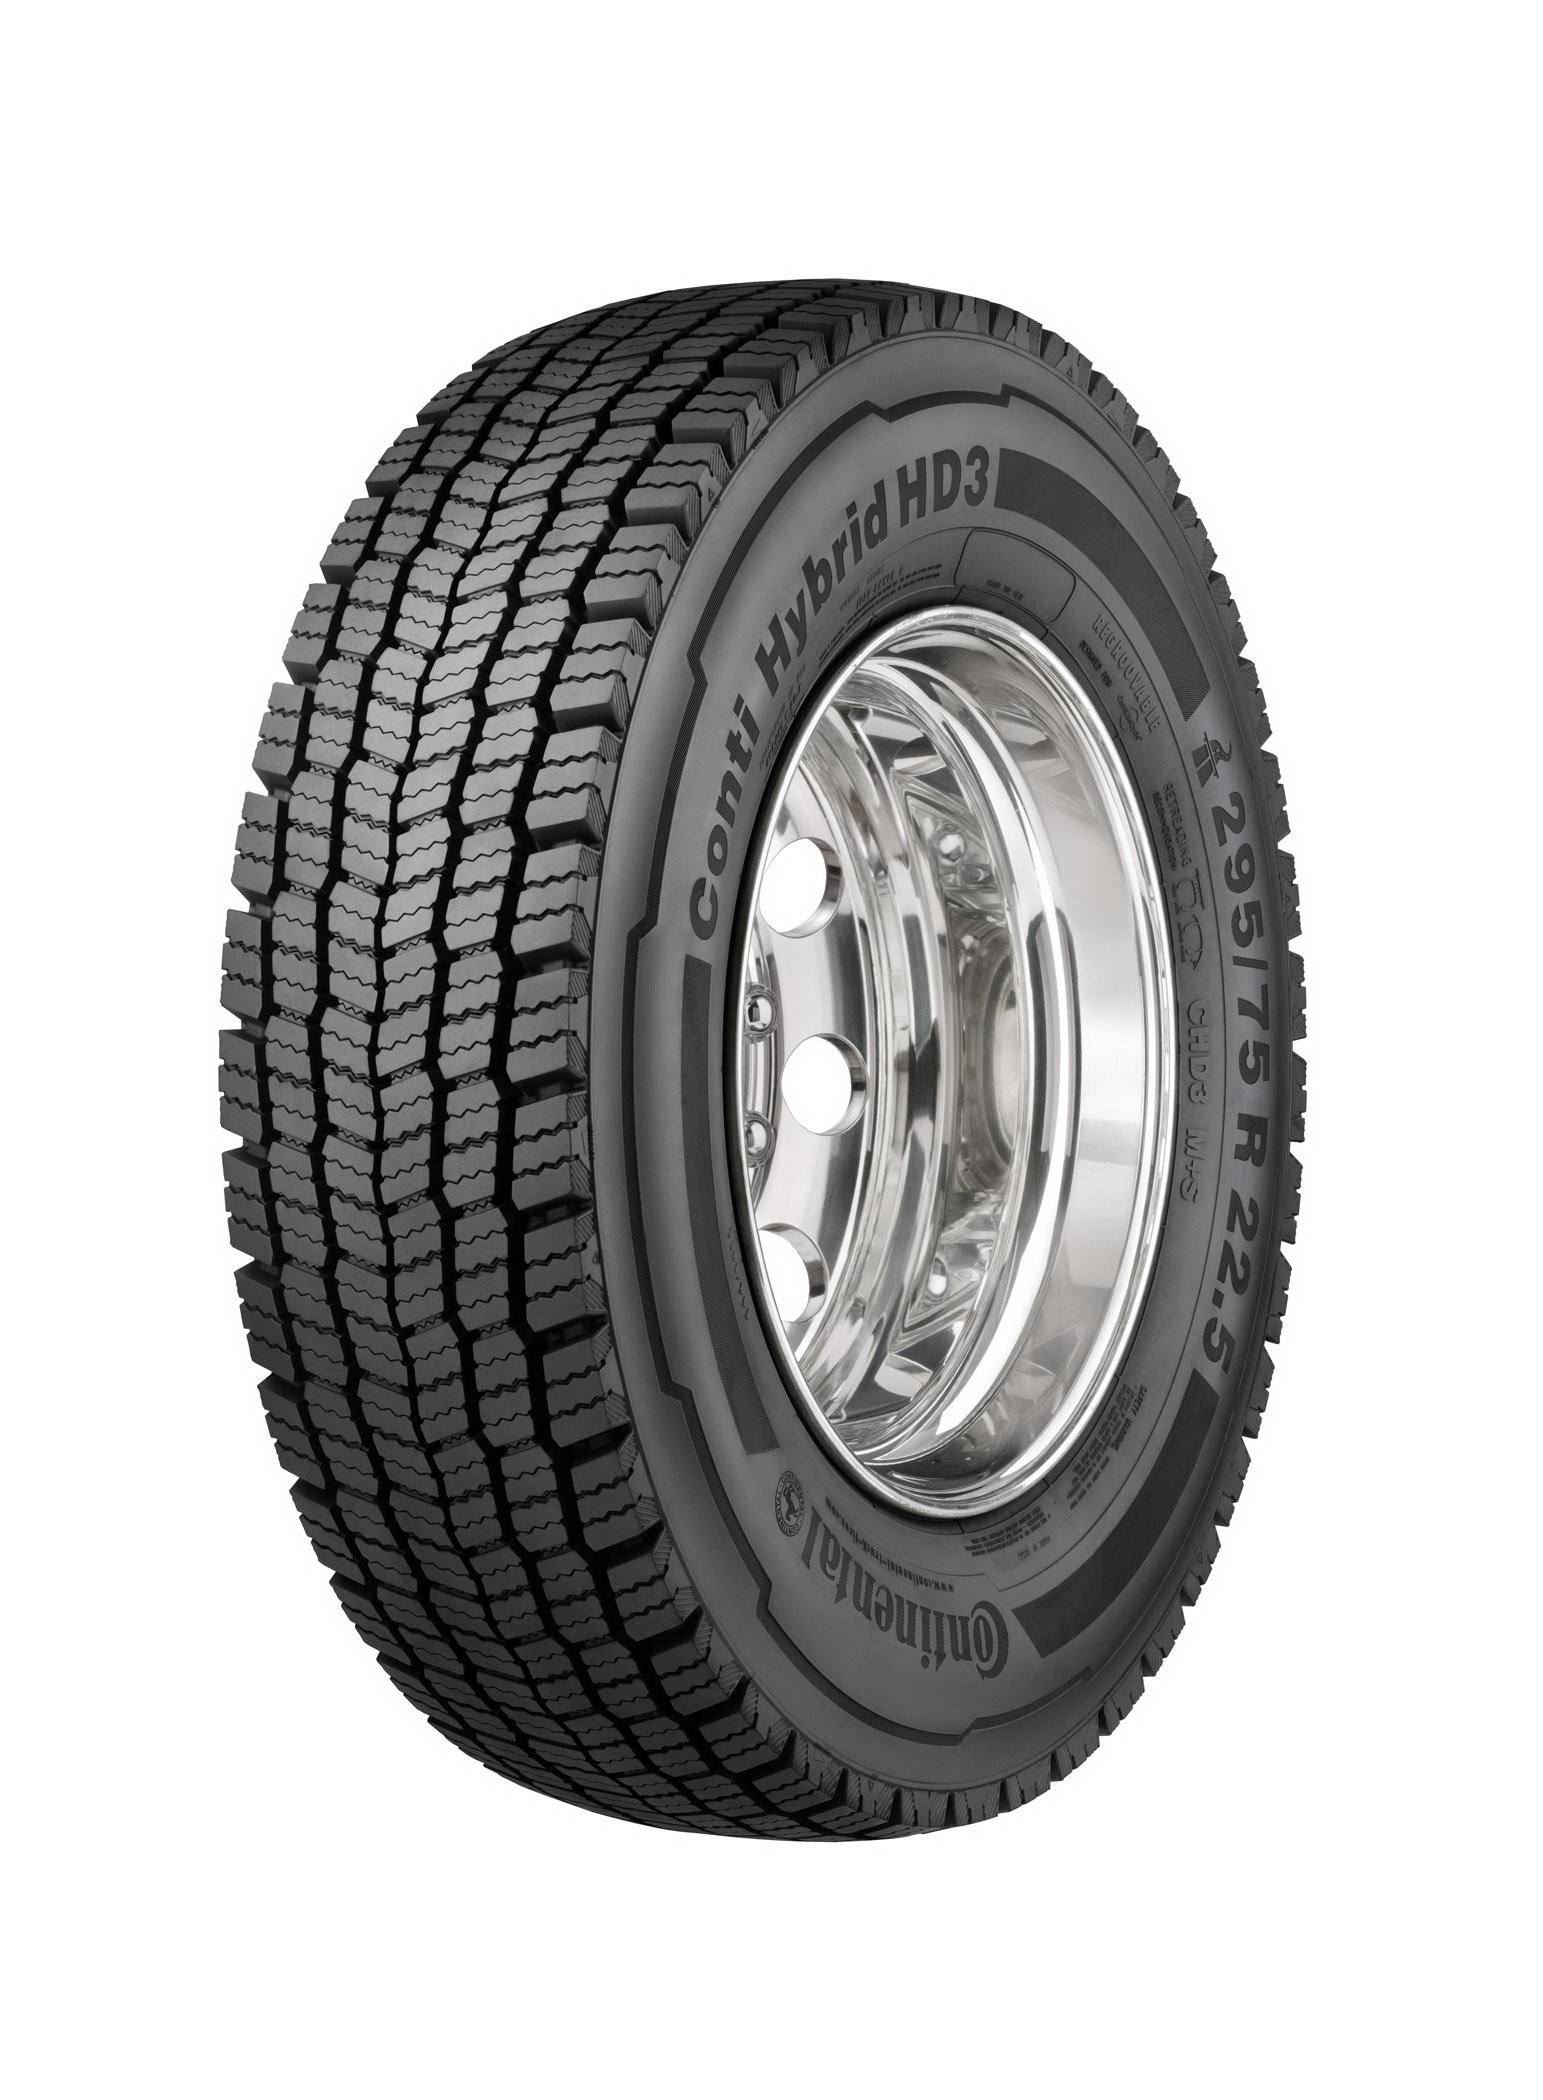 Anvelope trailer CONTINENTAL Conti Hybrid HD3 (CHD3) 315/80 R22.5 156/150L